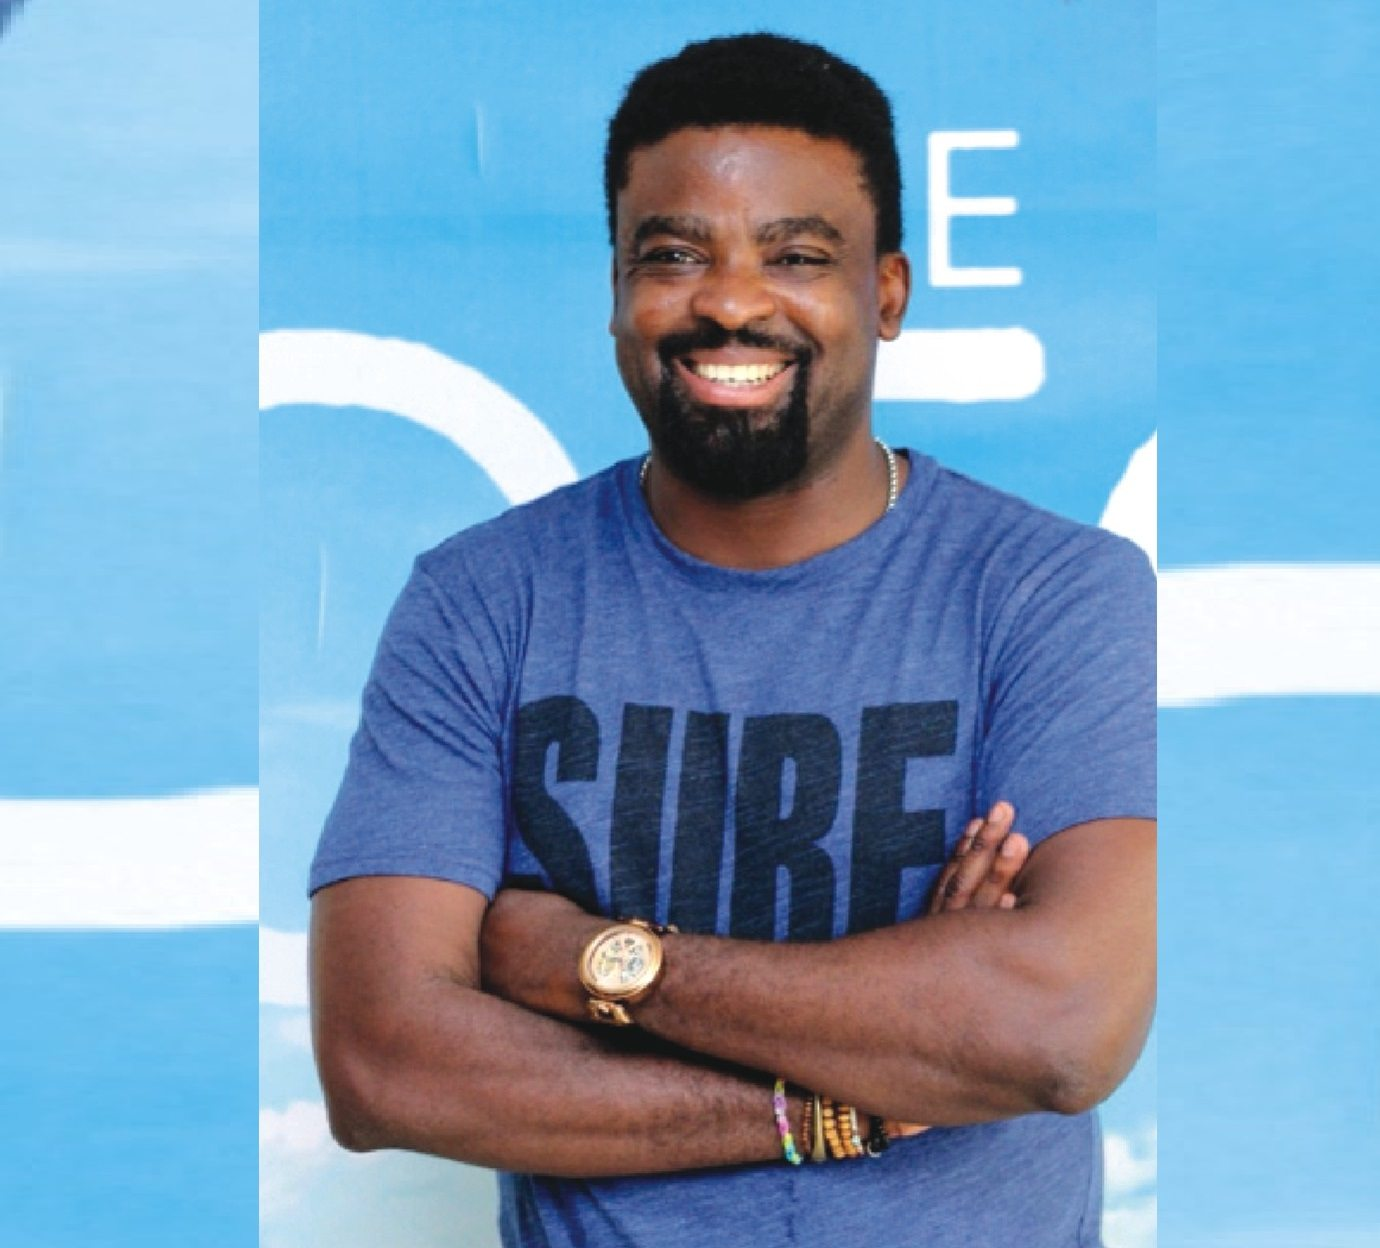 BoI funded 'The Bridge' with N50m – Kunle Afolayan